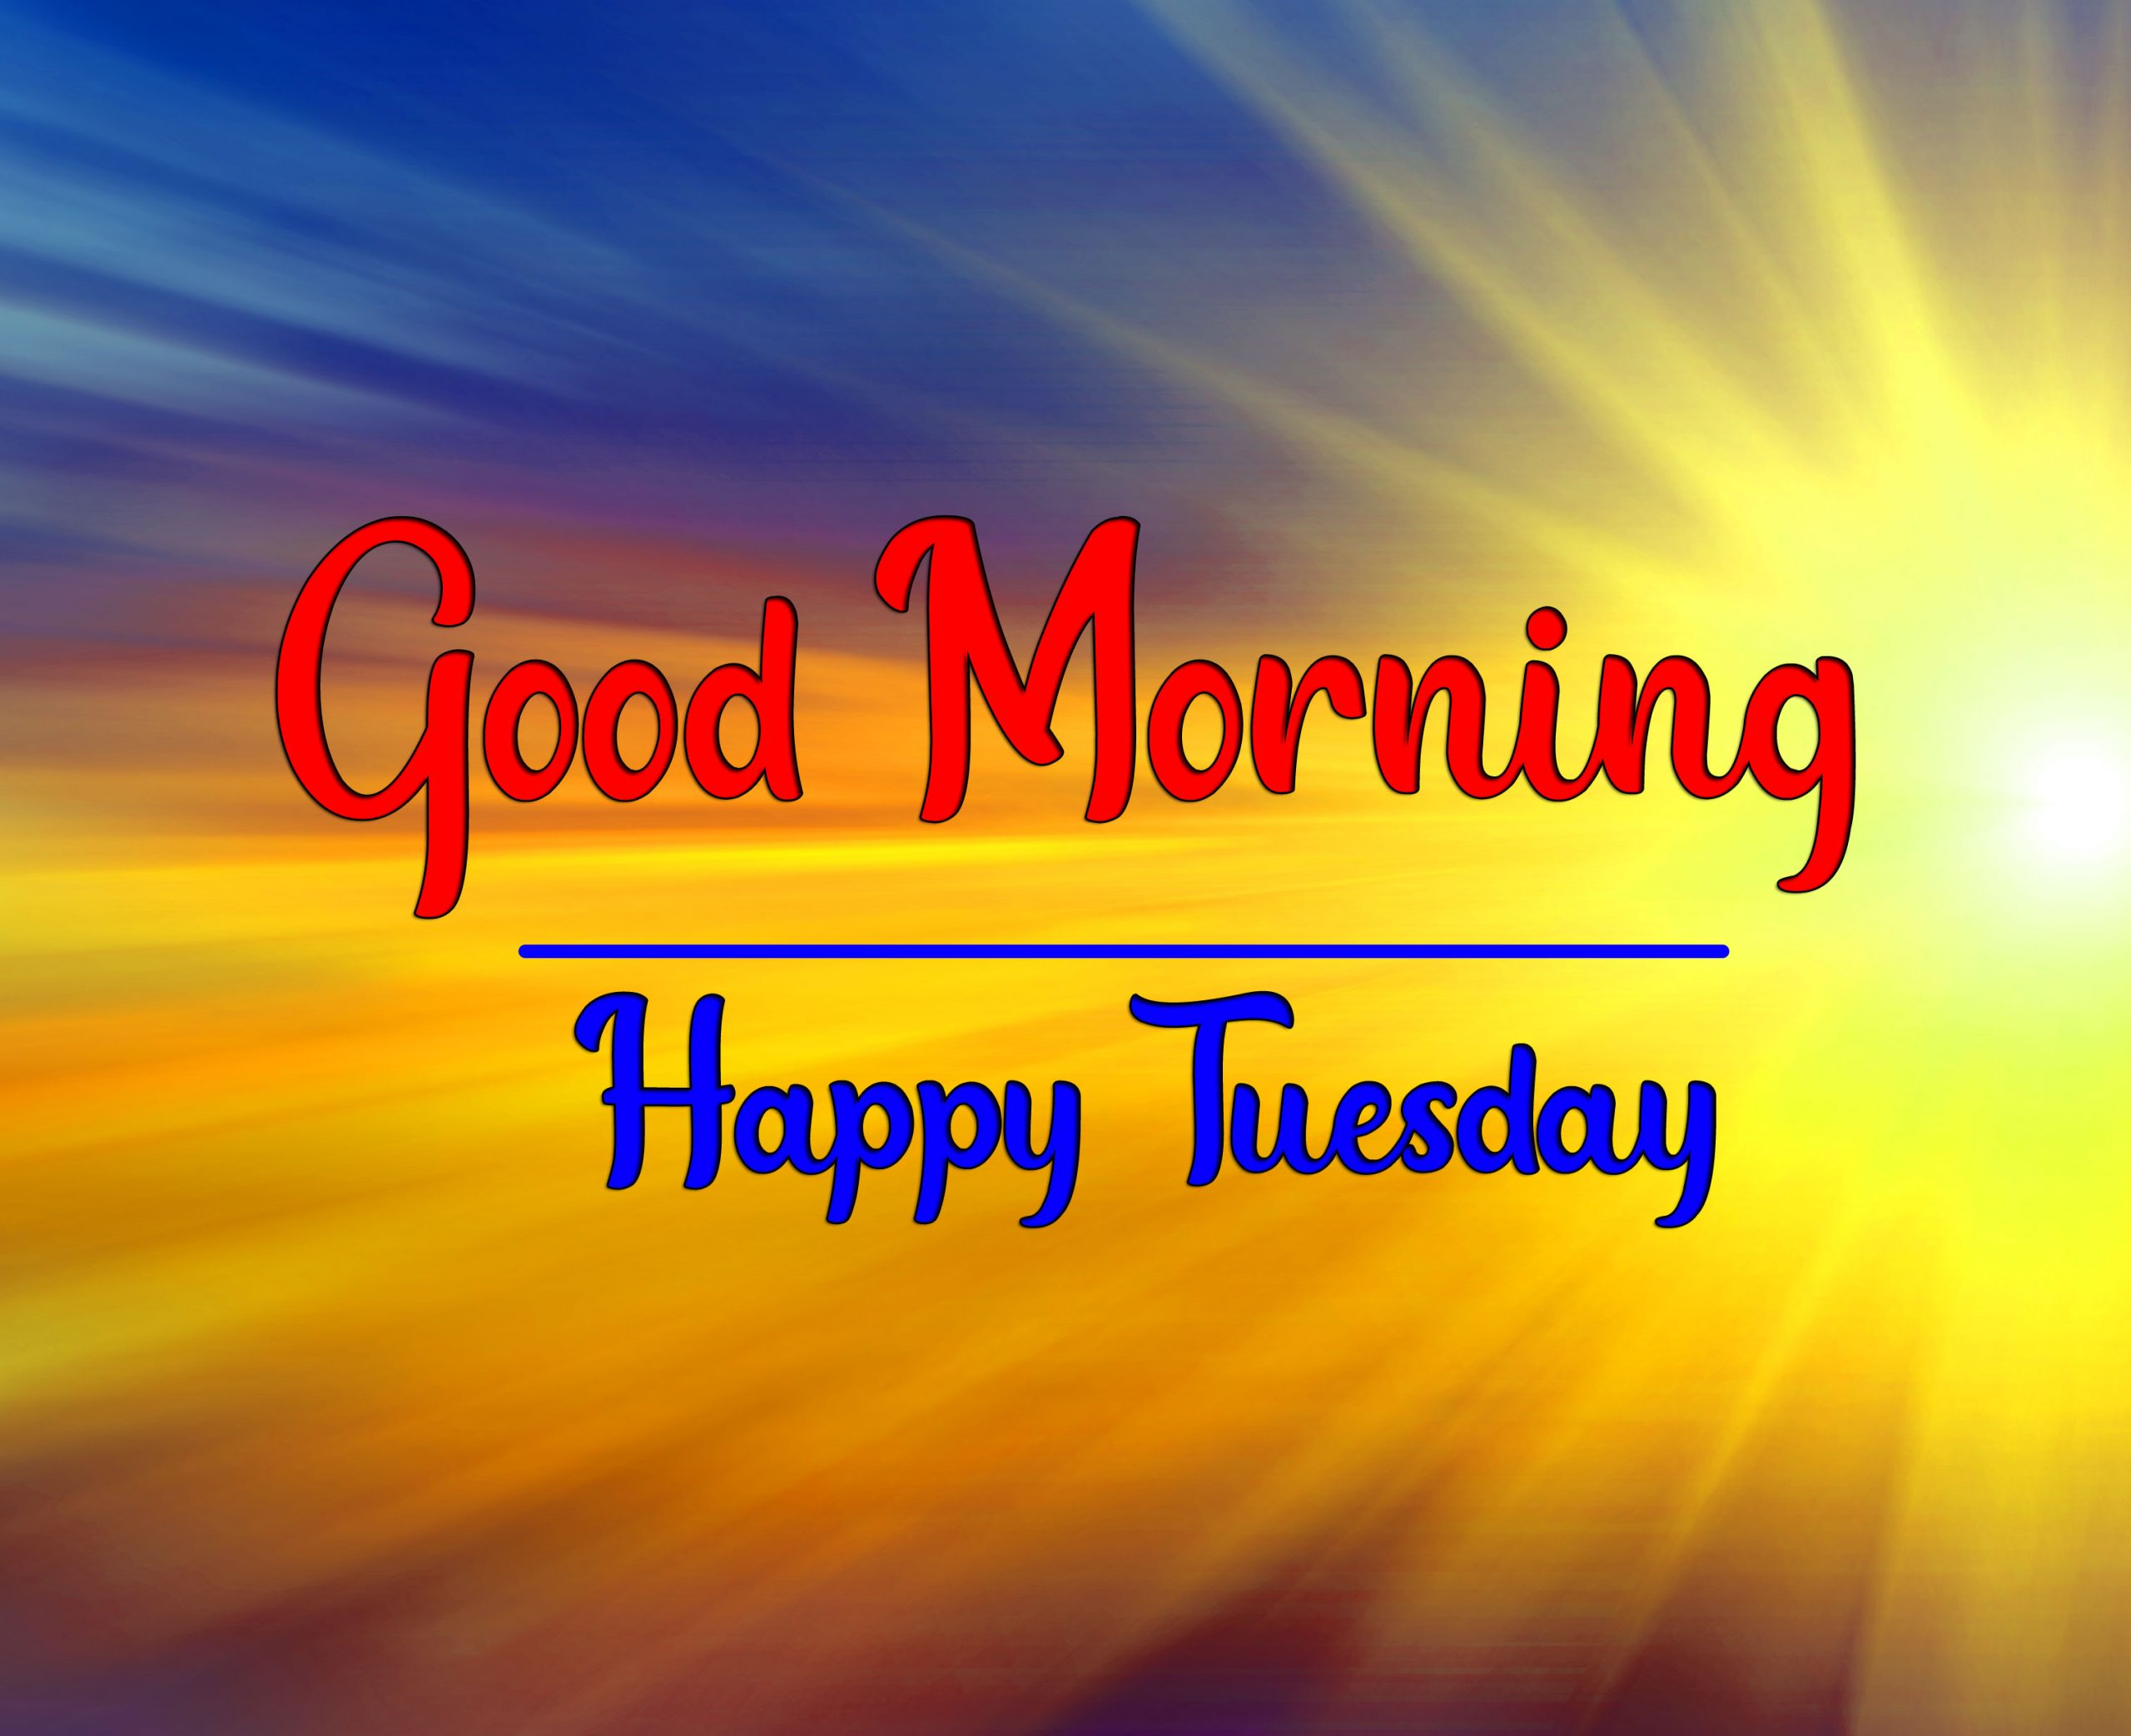 HD Free Tuesday Good morning Images